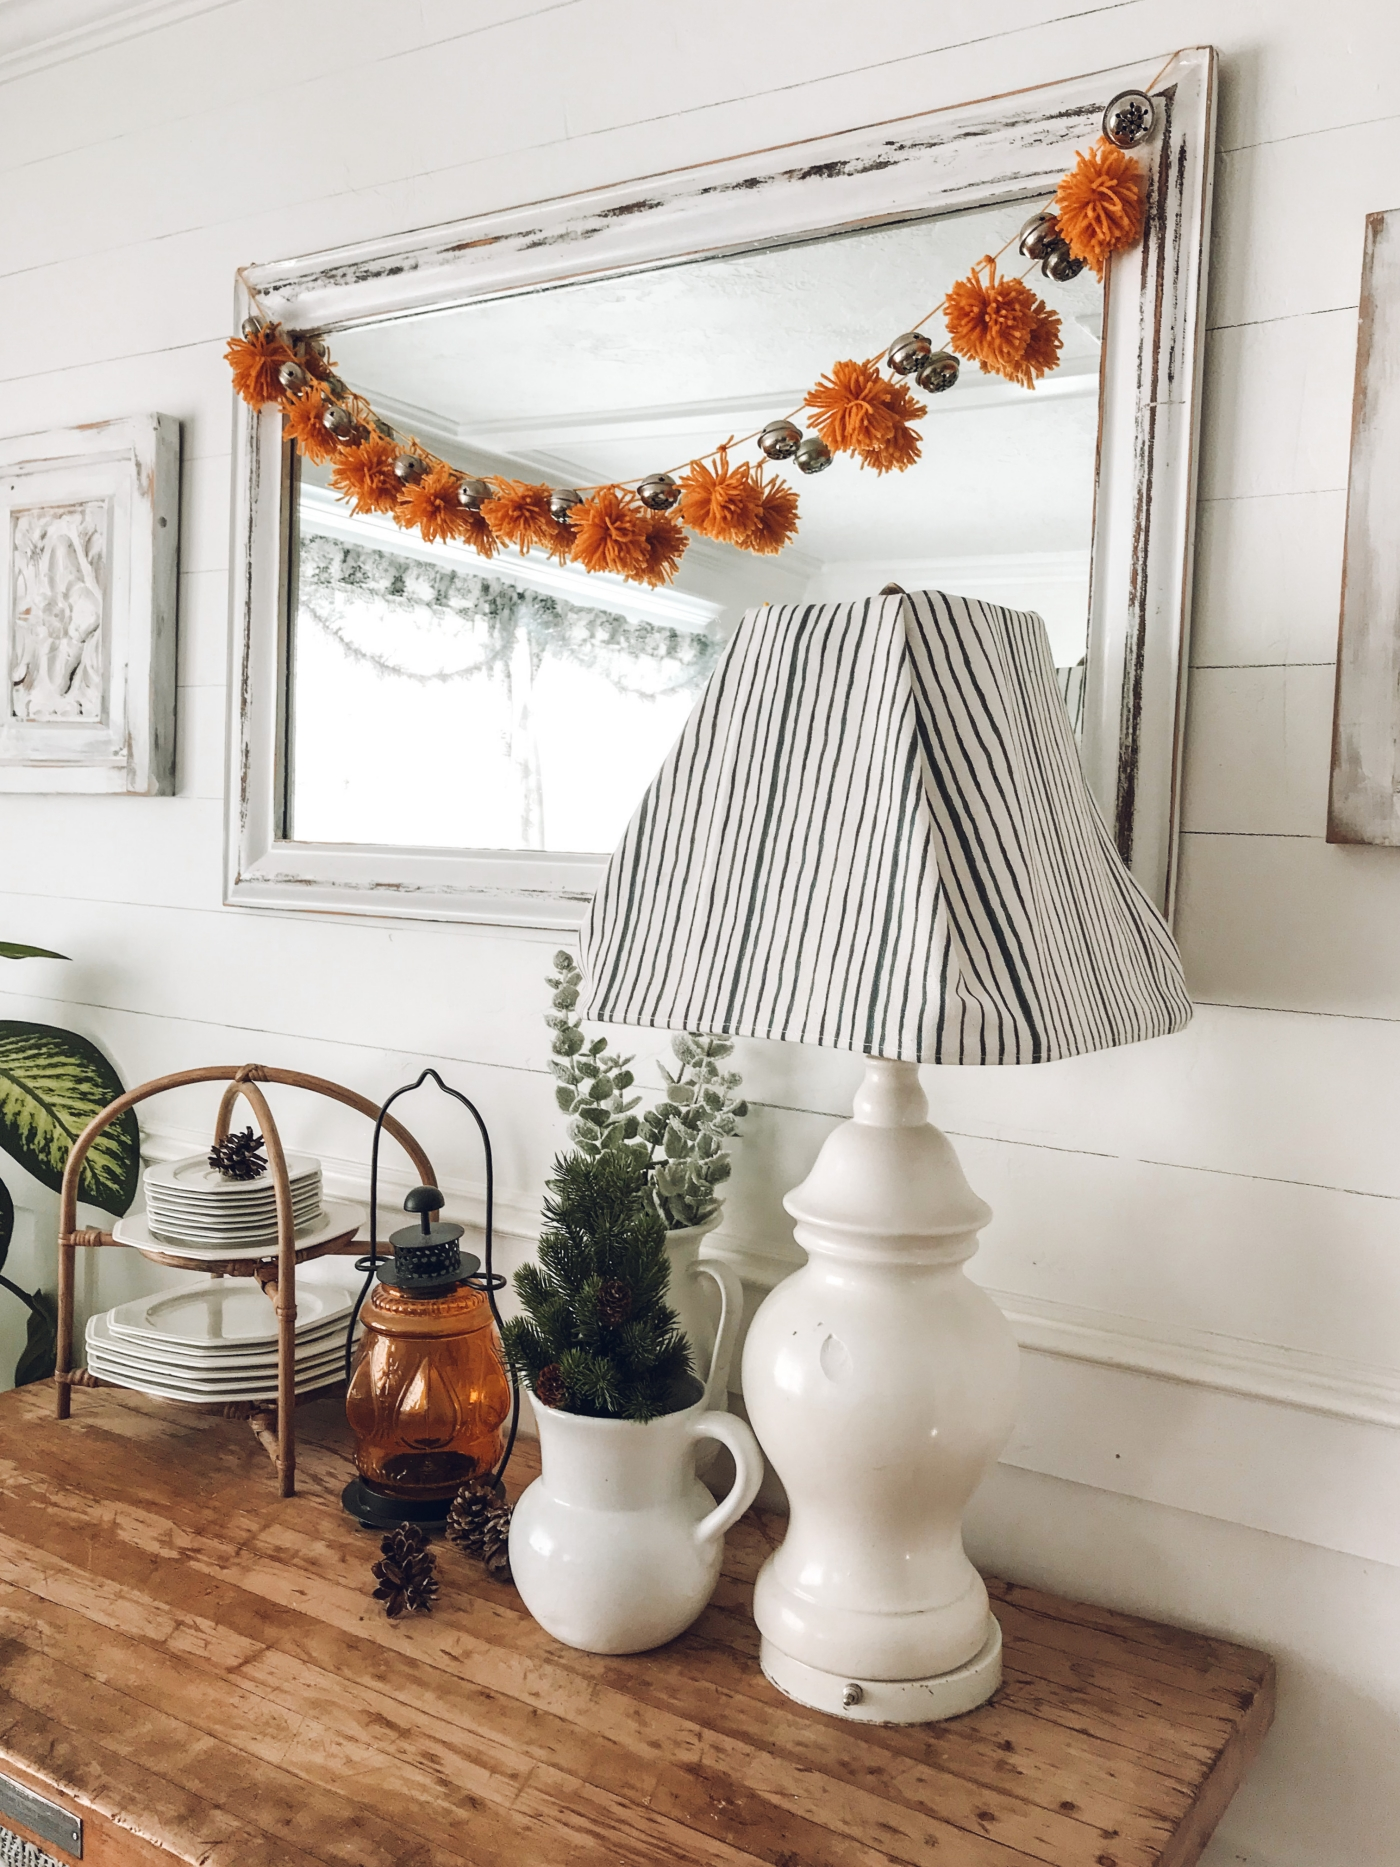 Diy Pom Pom And Jingle Bell Christmas Garland The Wicker House